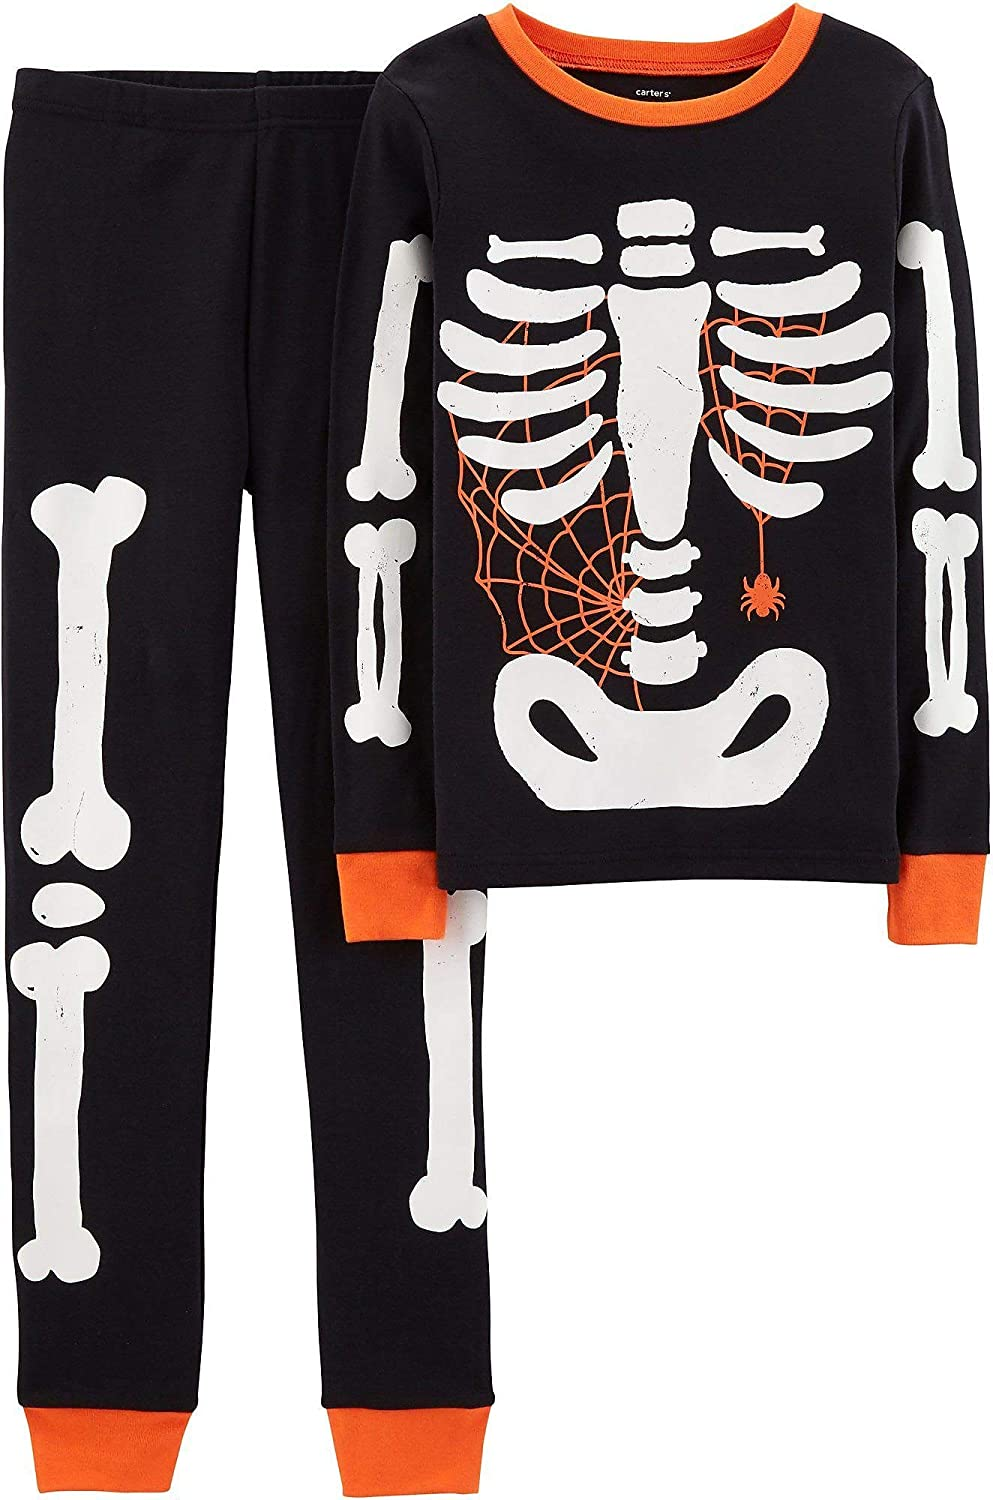 e4b48c8bd Amazon.com: Carter's Kids Boys 2-Piece Glow-in-The-Dark Halloween Pajamas:  Clothing